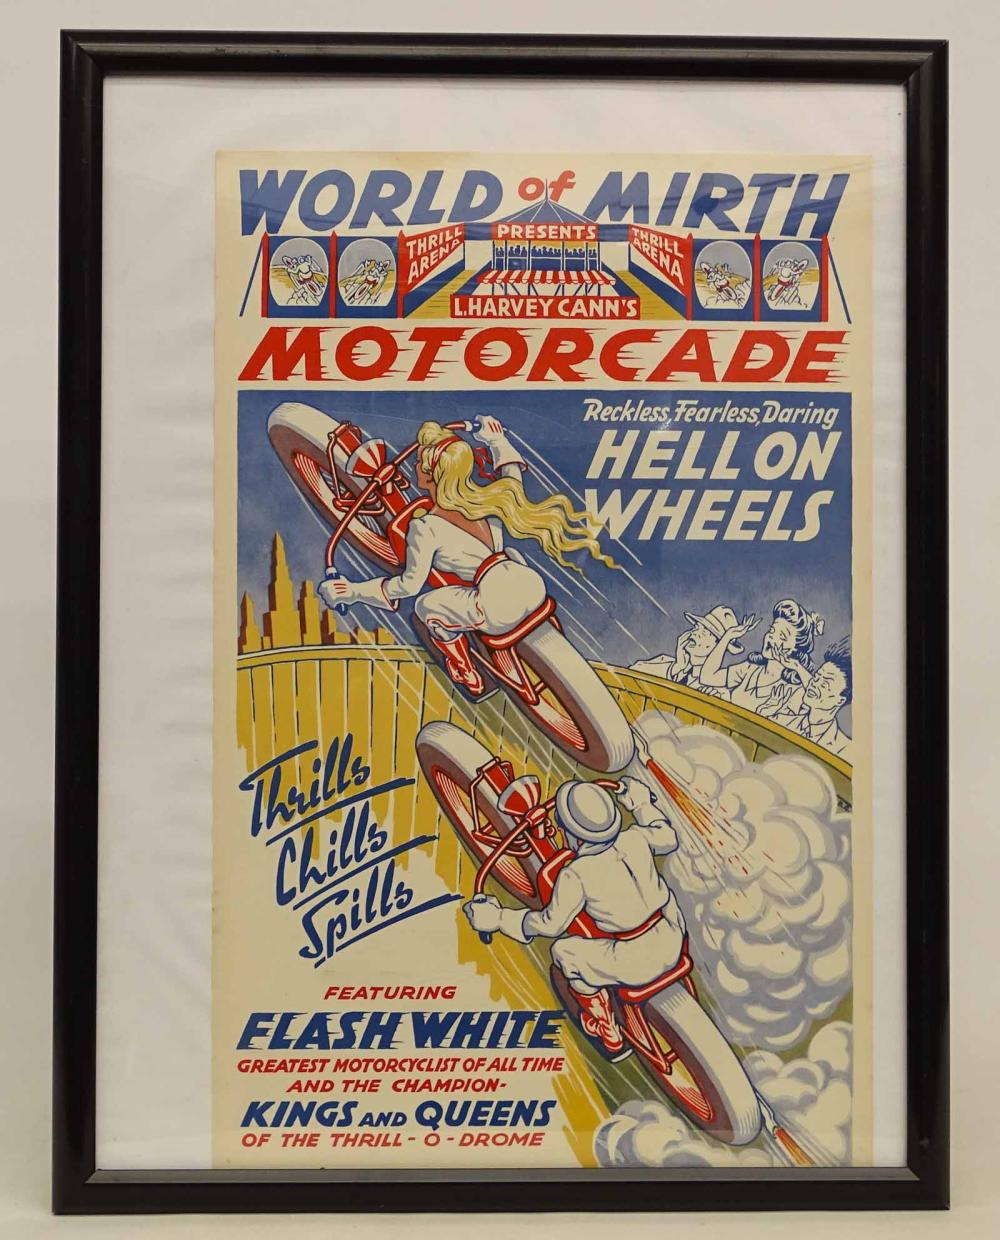 Original Daredevil Motorcycle Poster